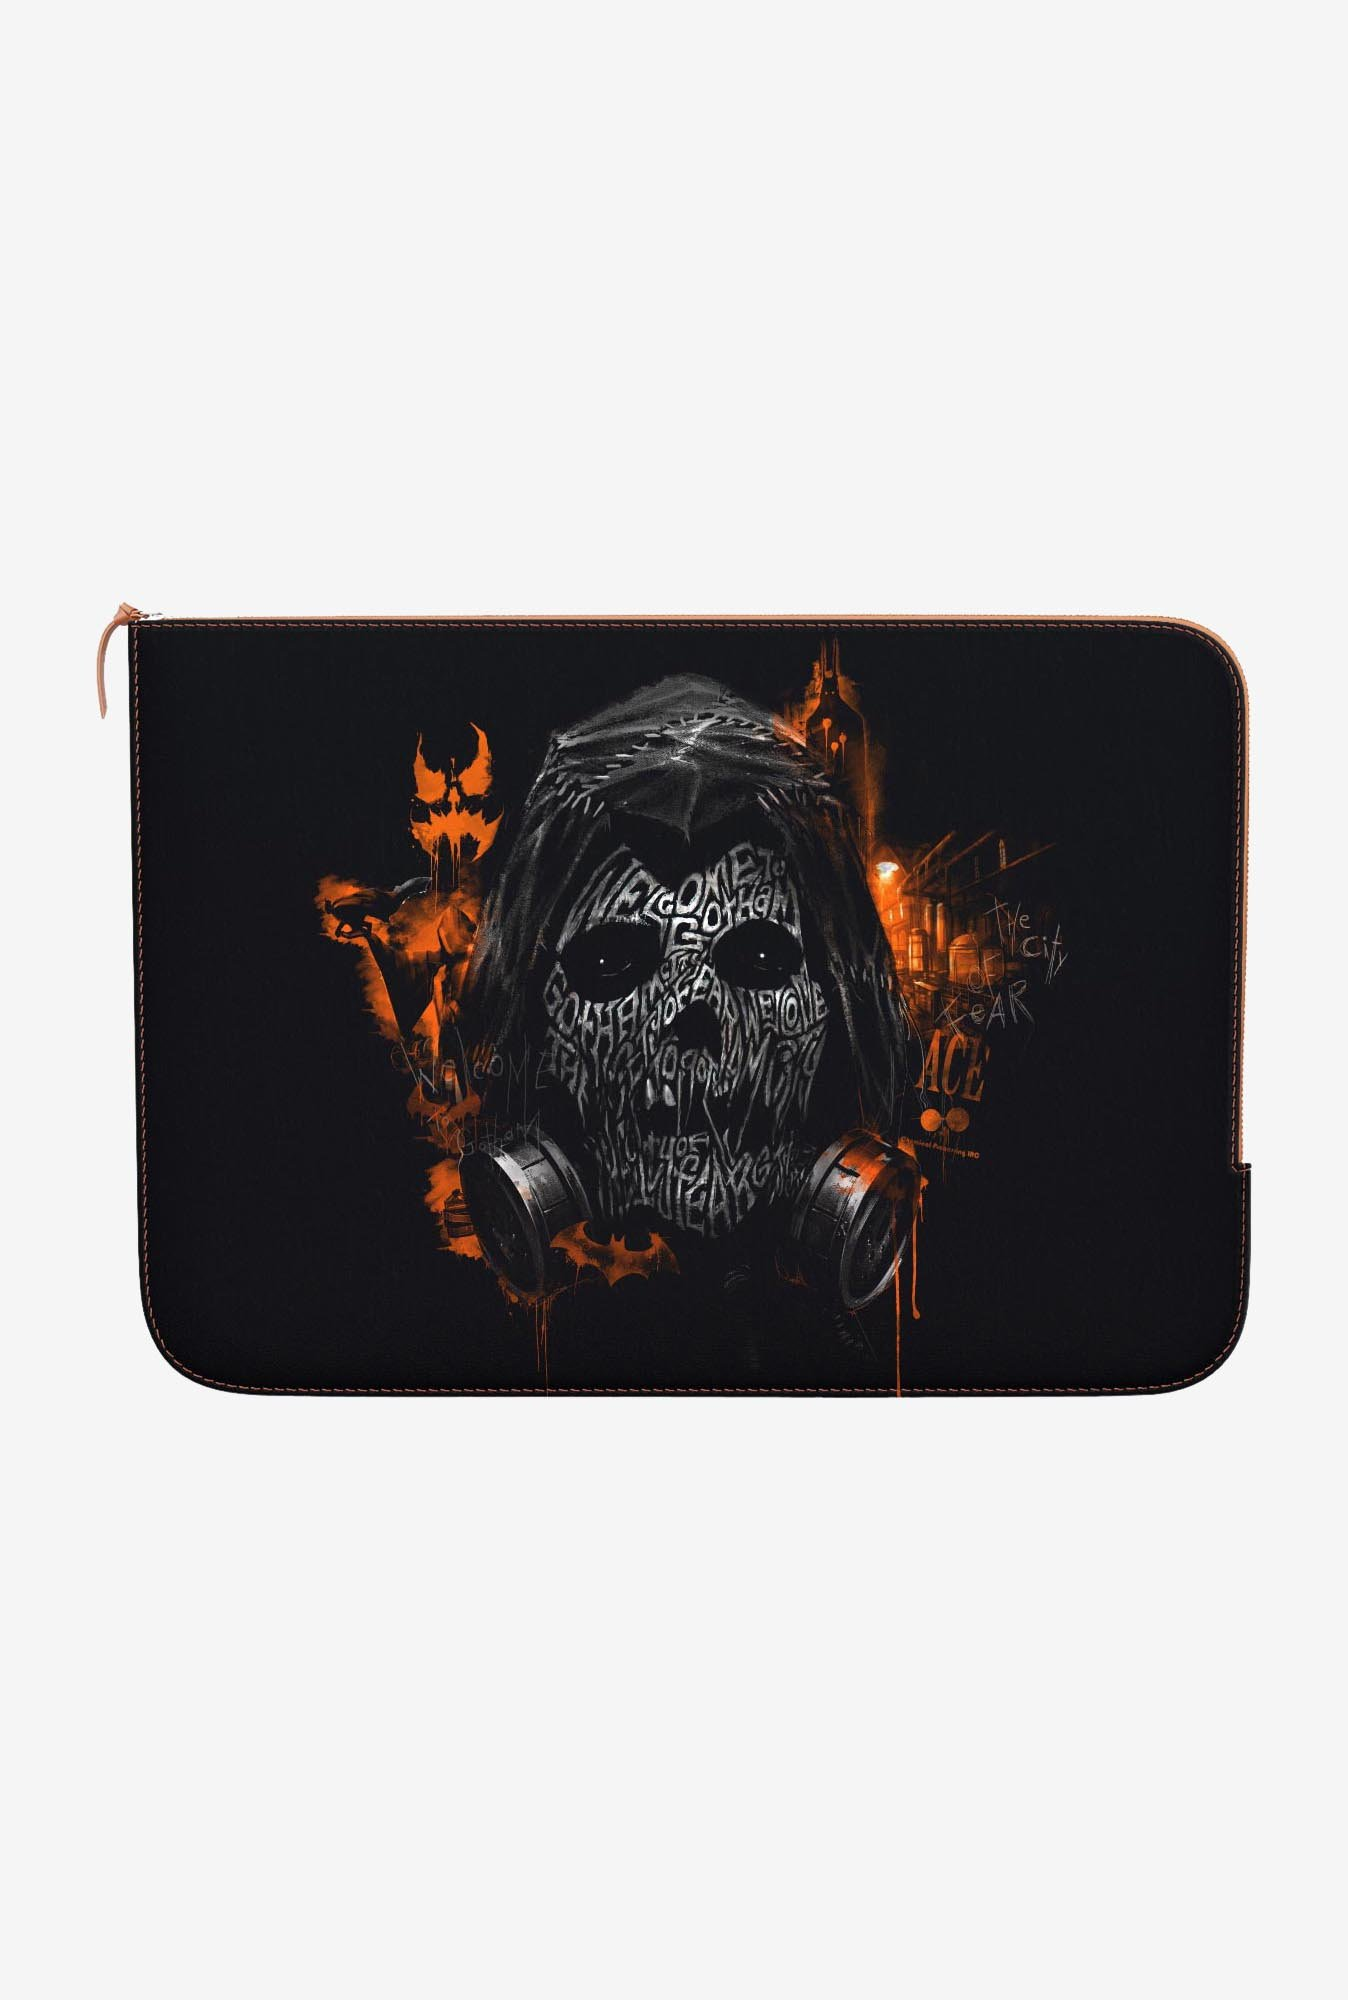 DailyObjects Scarecrow Neon MacBook 12 Zippered Sleeve